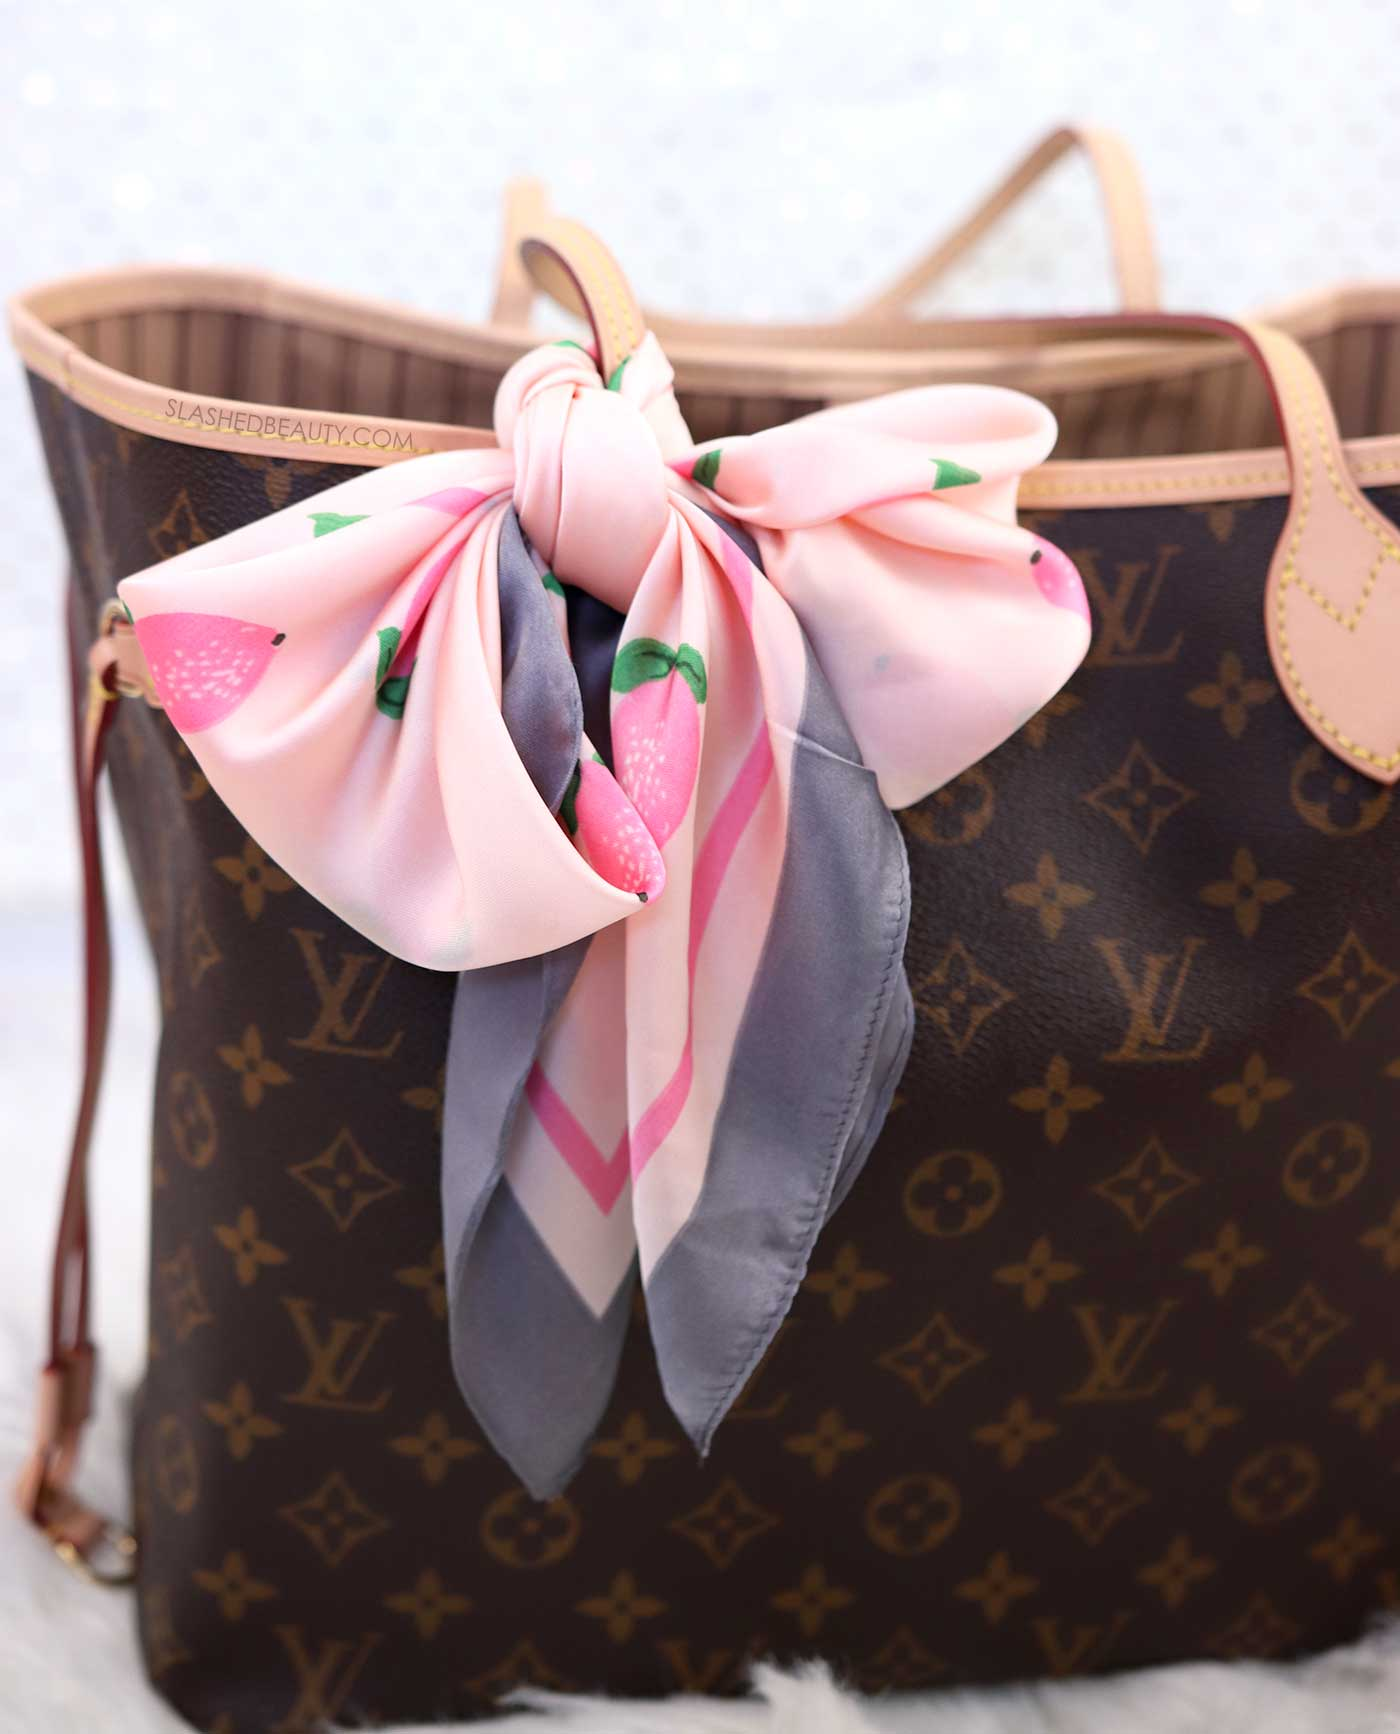 Cute Handbag Scarf for Neverfull | 5 Affordable Handbag Accessories for the Louis Vuitton Neverfull | Slashed Beauty